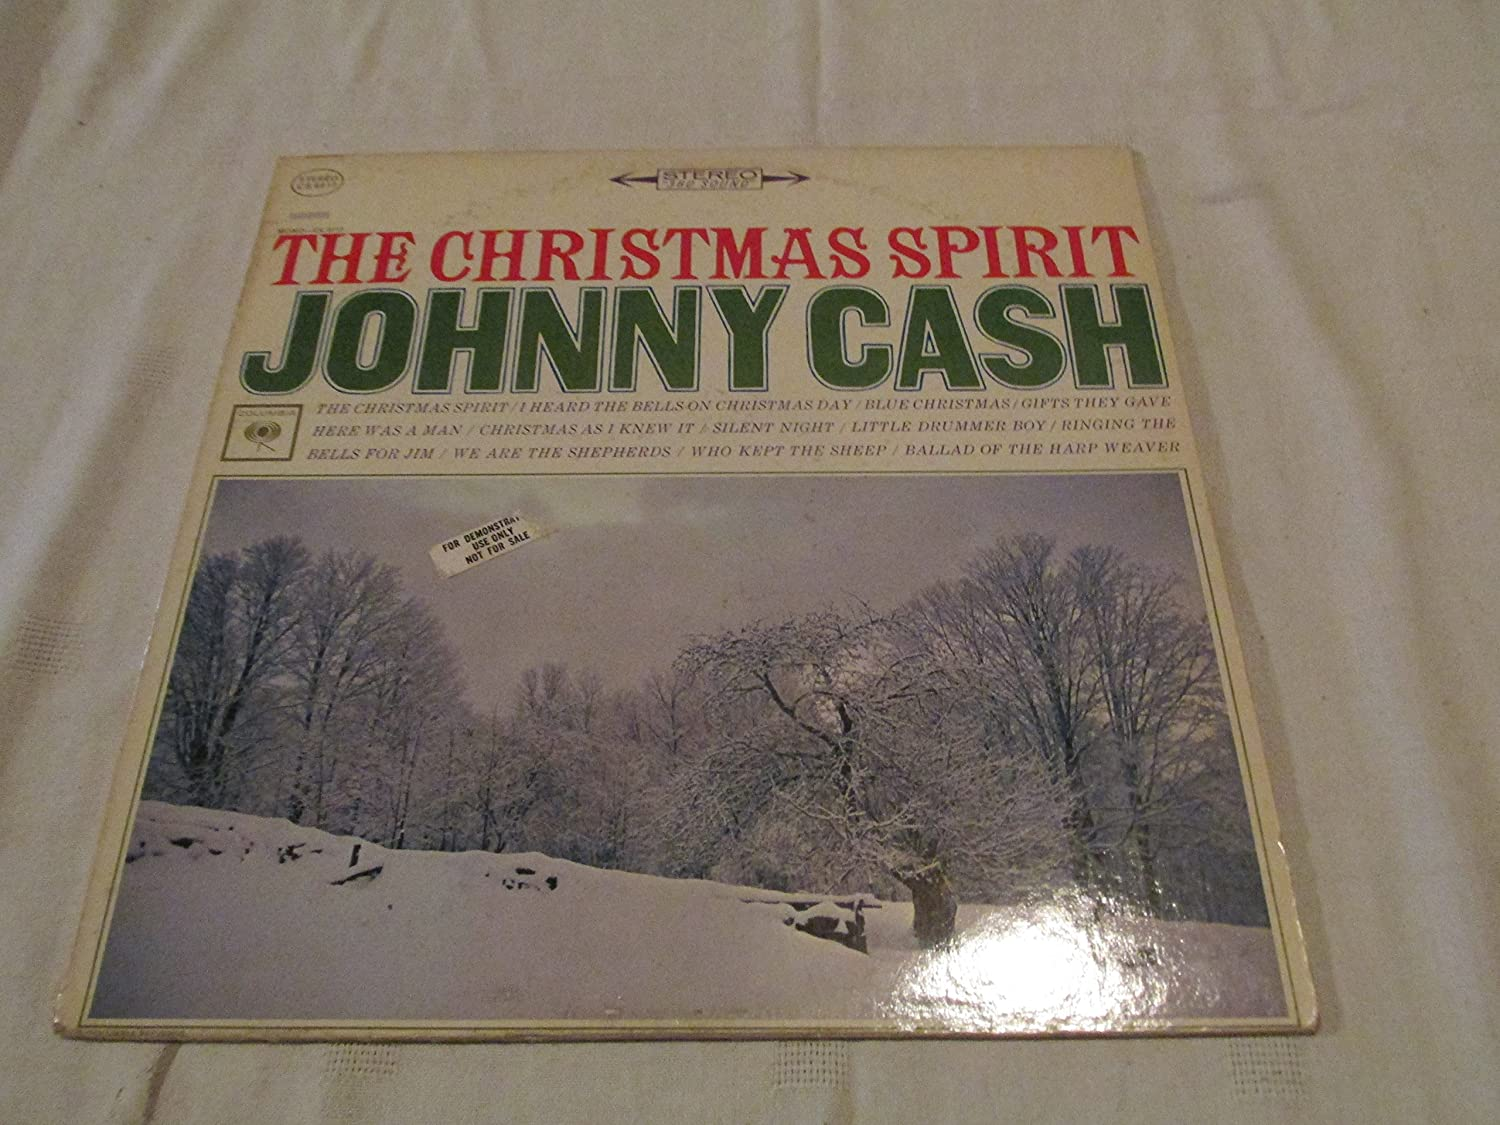 JOHNNY CASH - the christmas spirit COLUMBIA 8917 (LP vinyl record ...